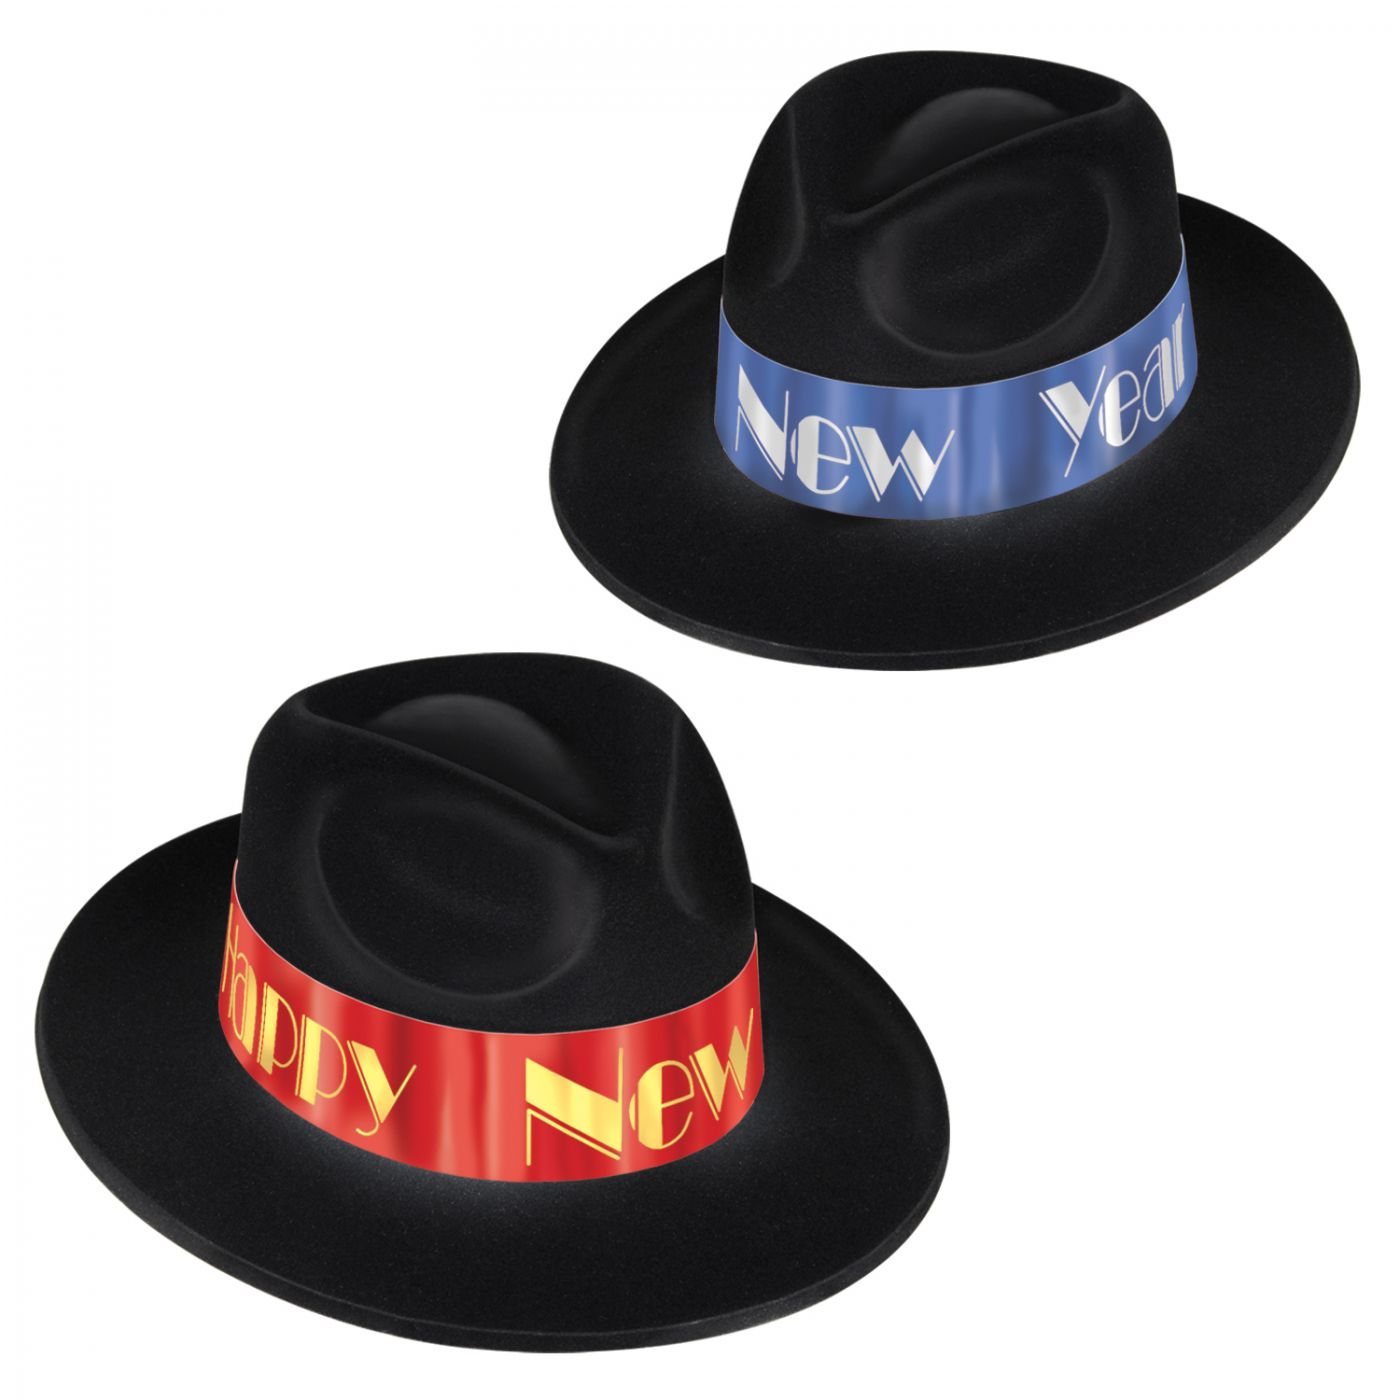 Fire & Ice Fedoras (25) image